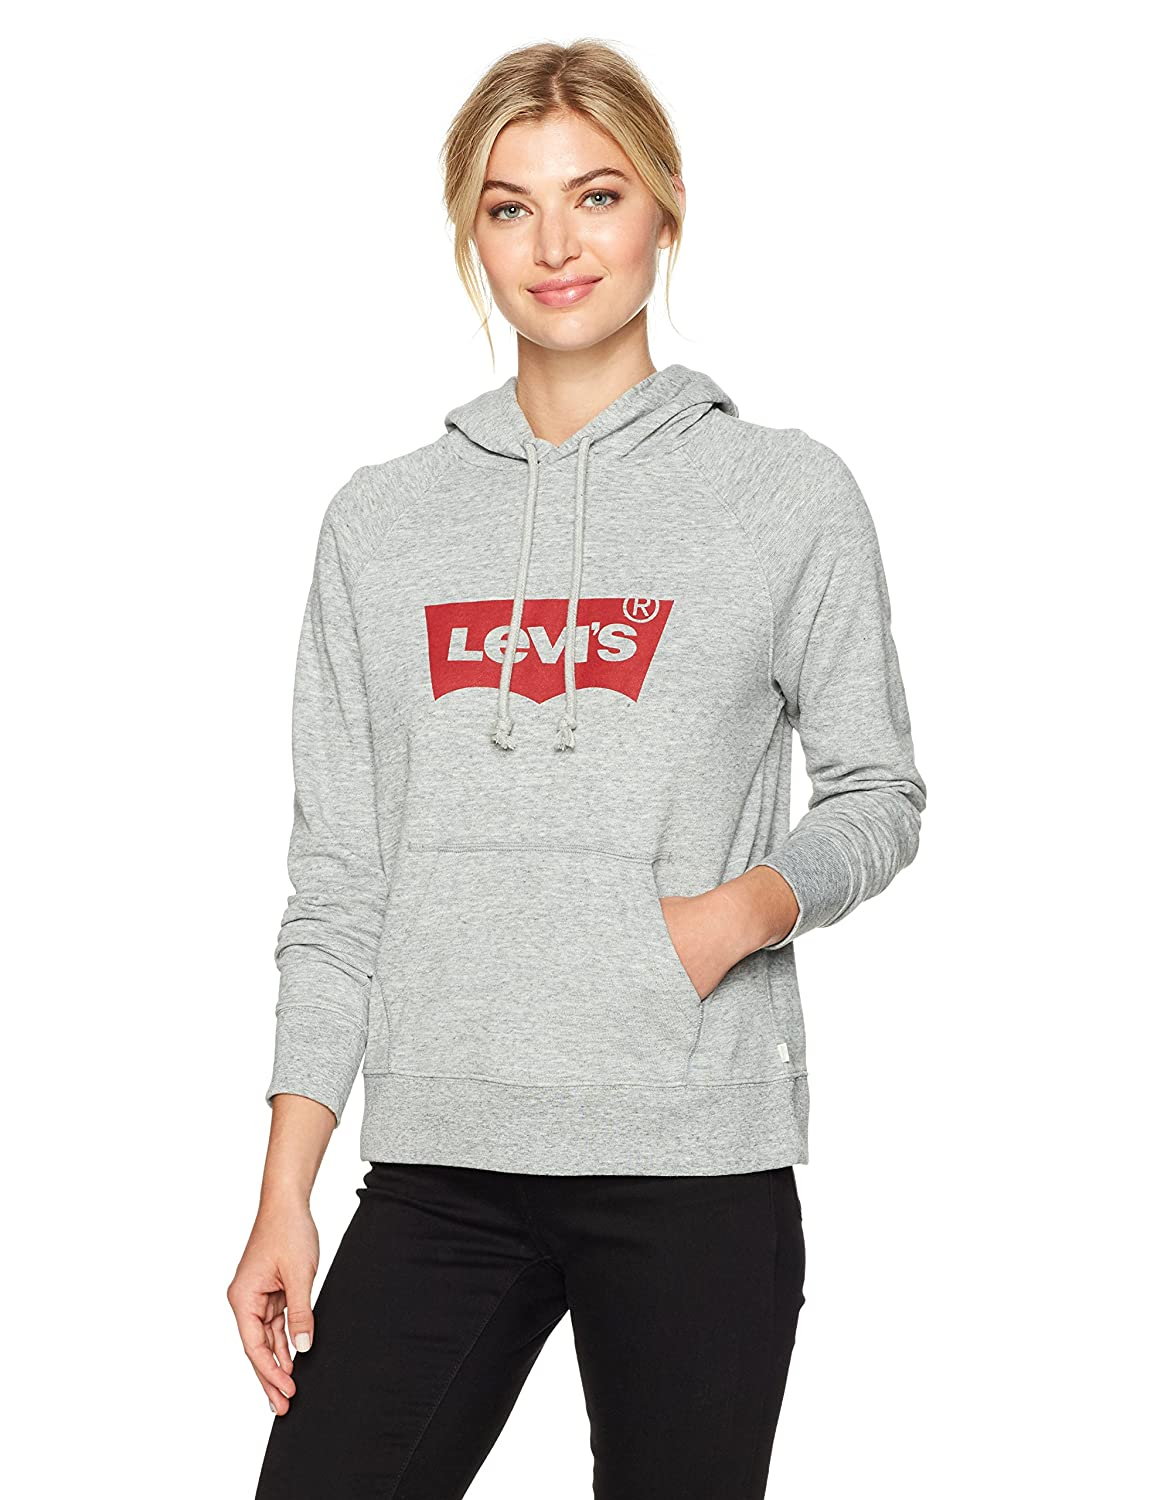 33b18a2aa1624 Amazon.com: Levi's Women's Graphic Hoodie: Clothing